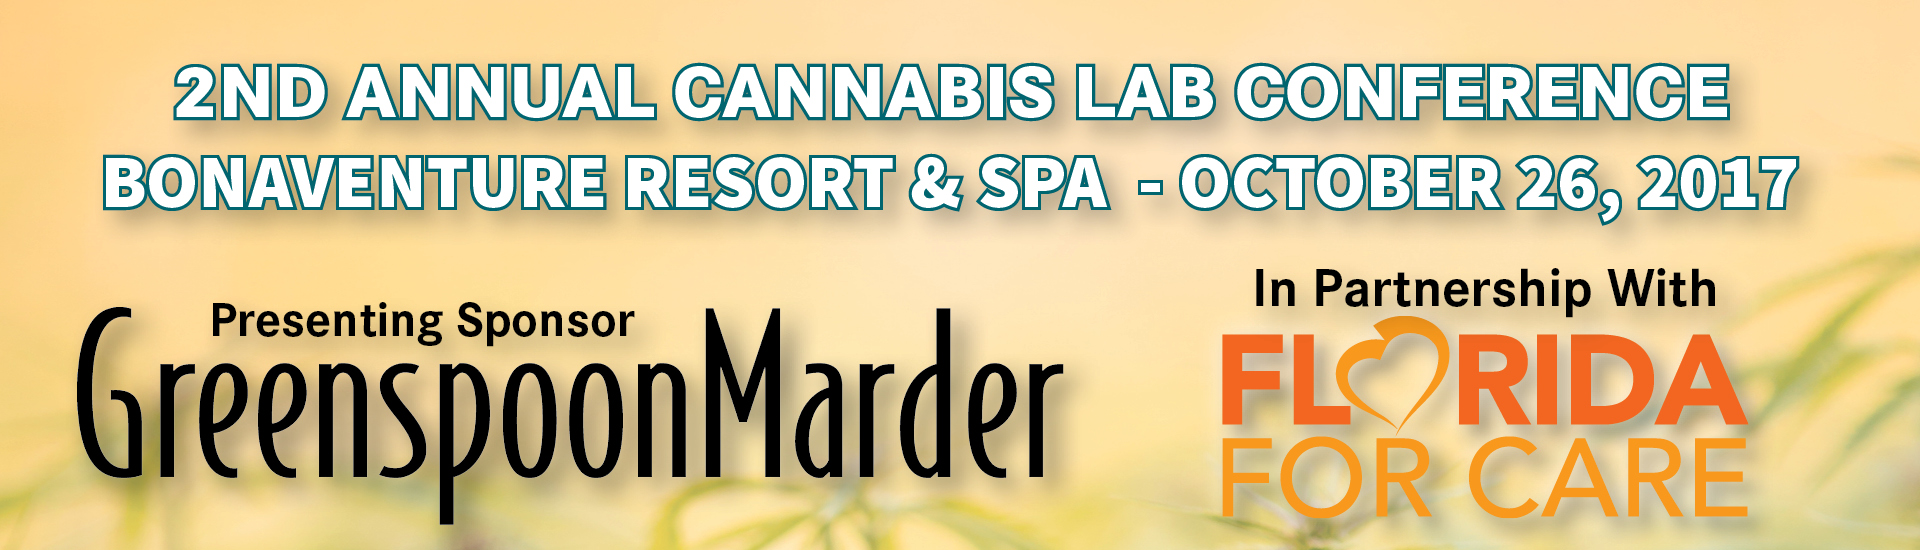 2ND ANNUAL CANNABIS LAB CONFERENCE